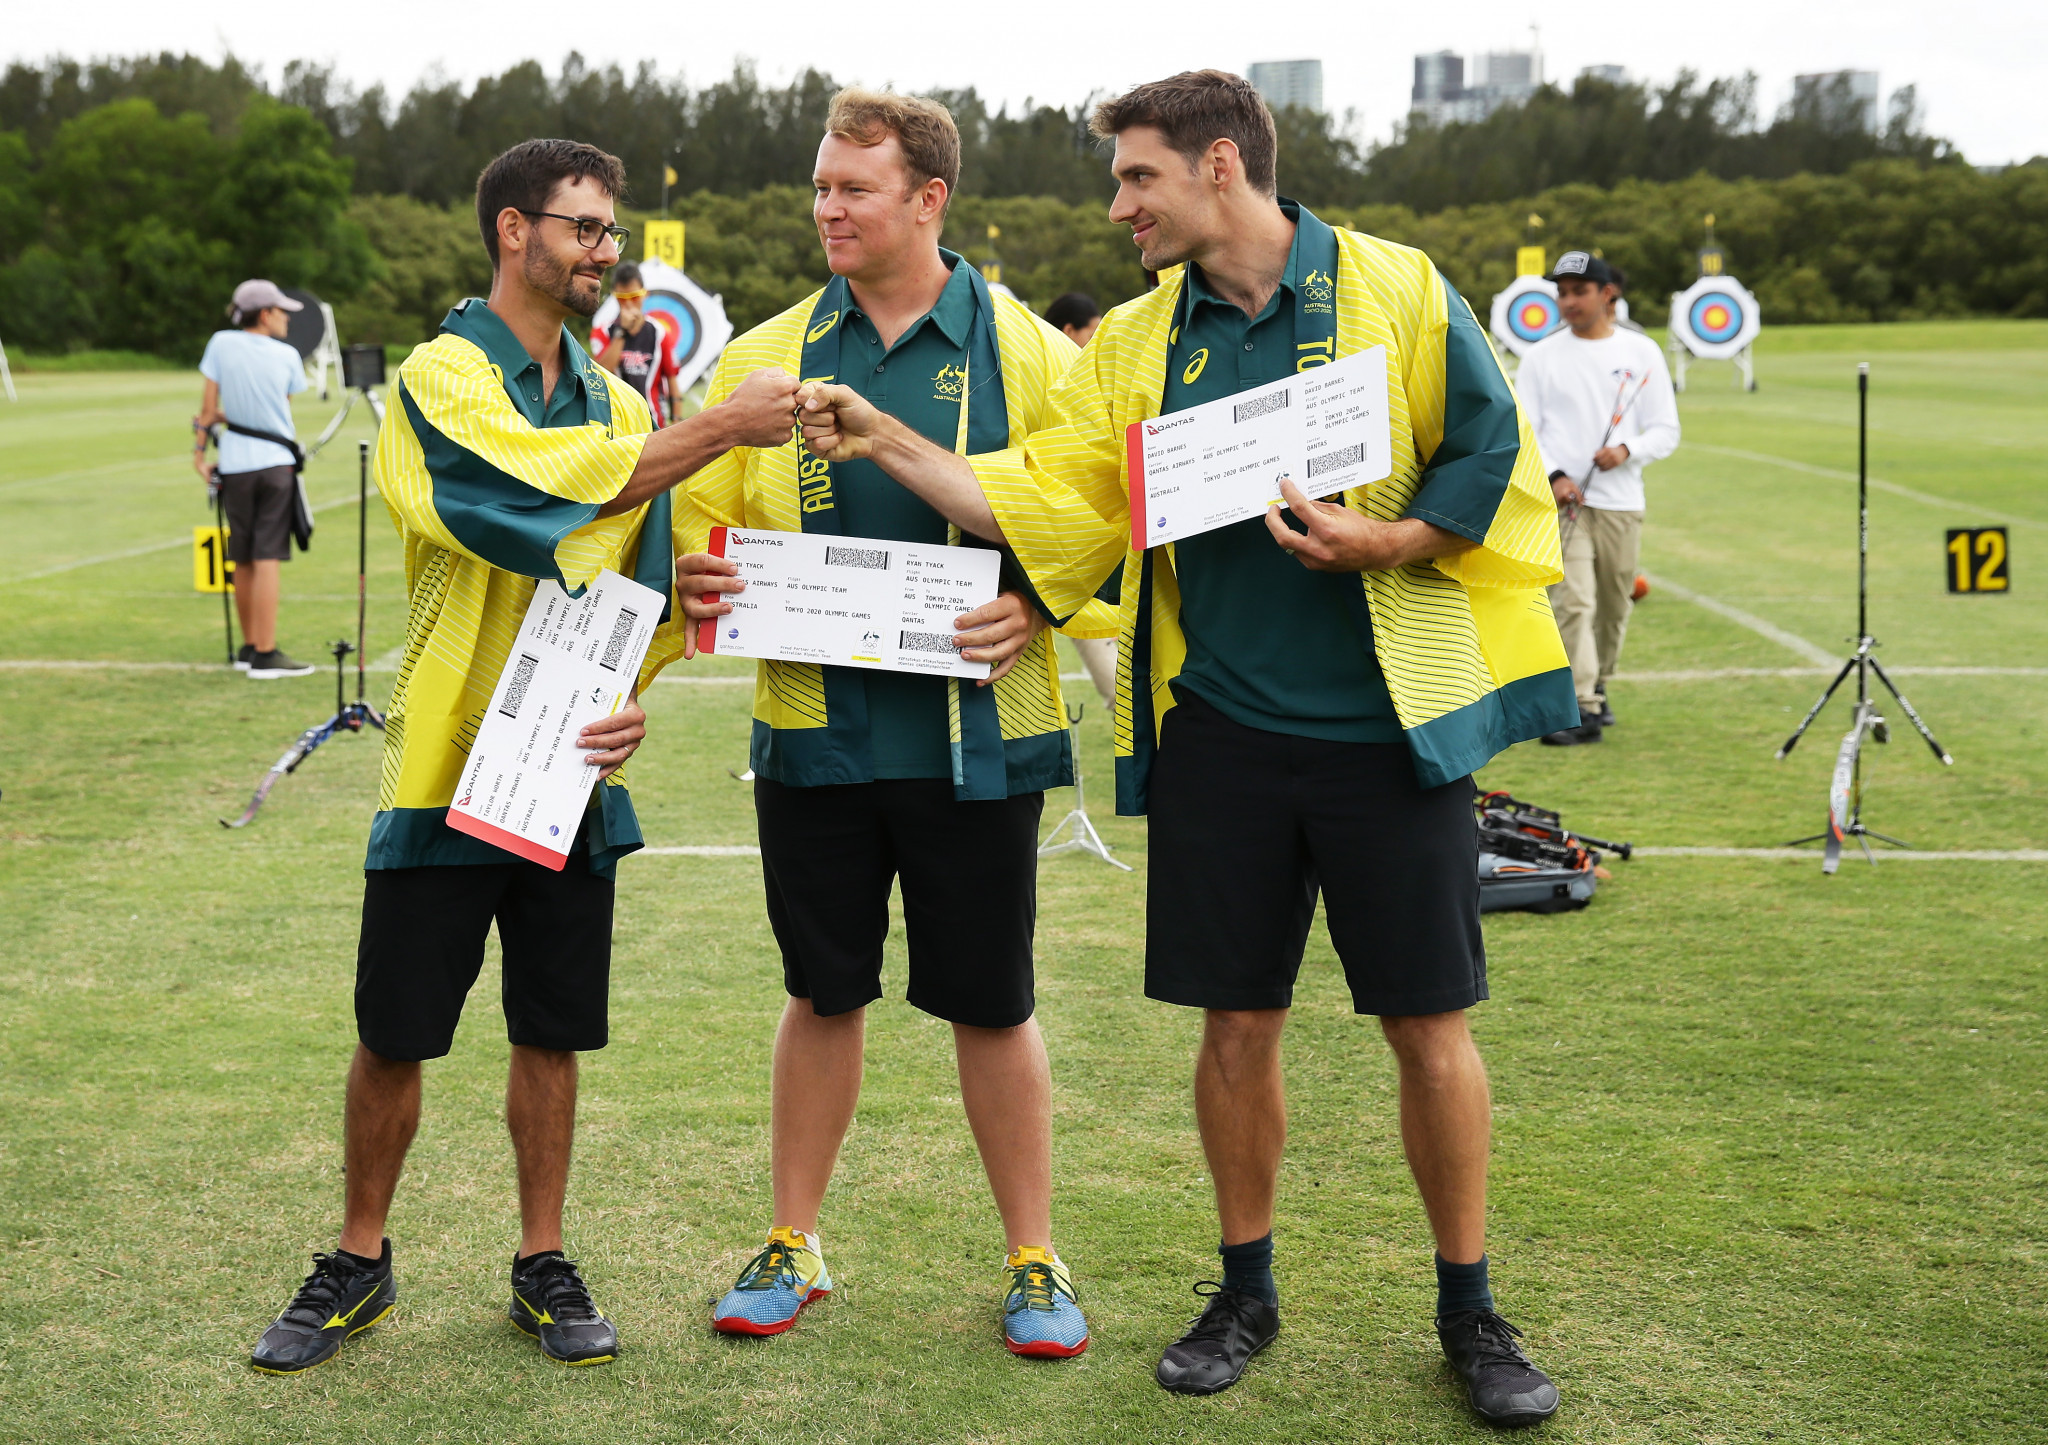 Barnes returns to Australian Olympic archery team after 16-year absence